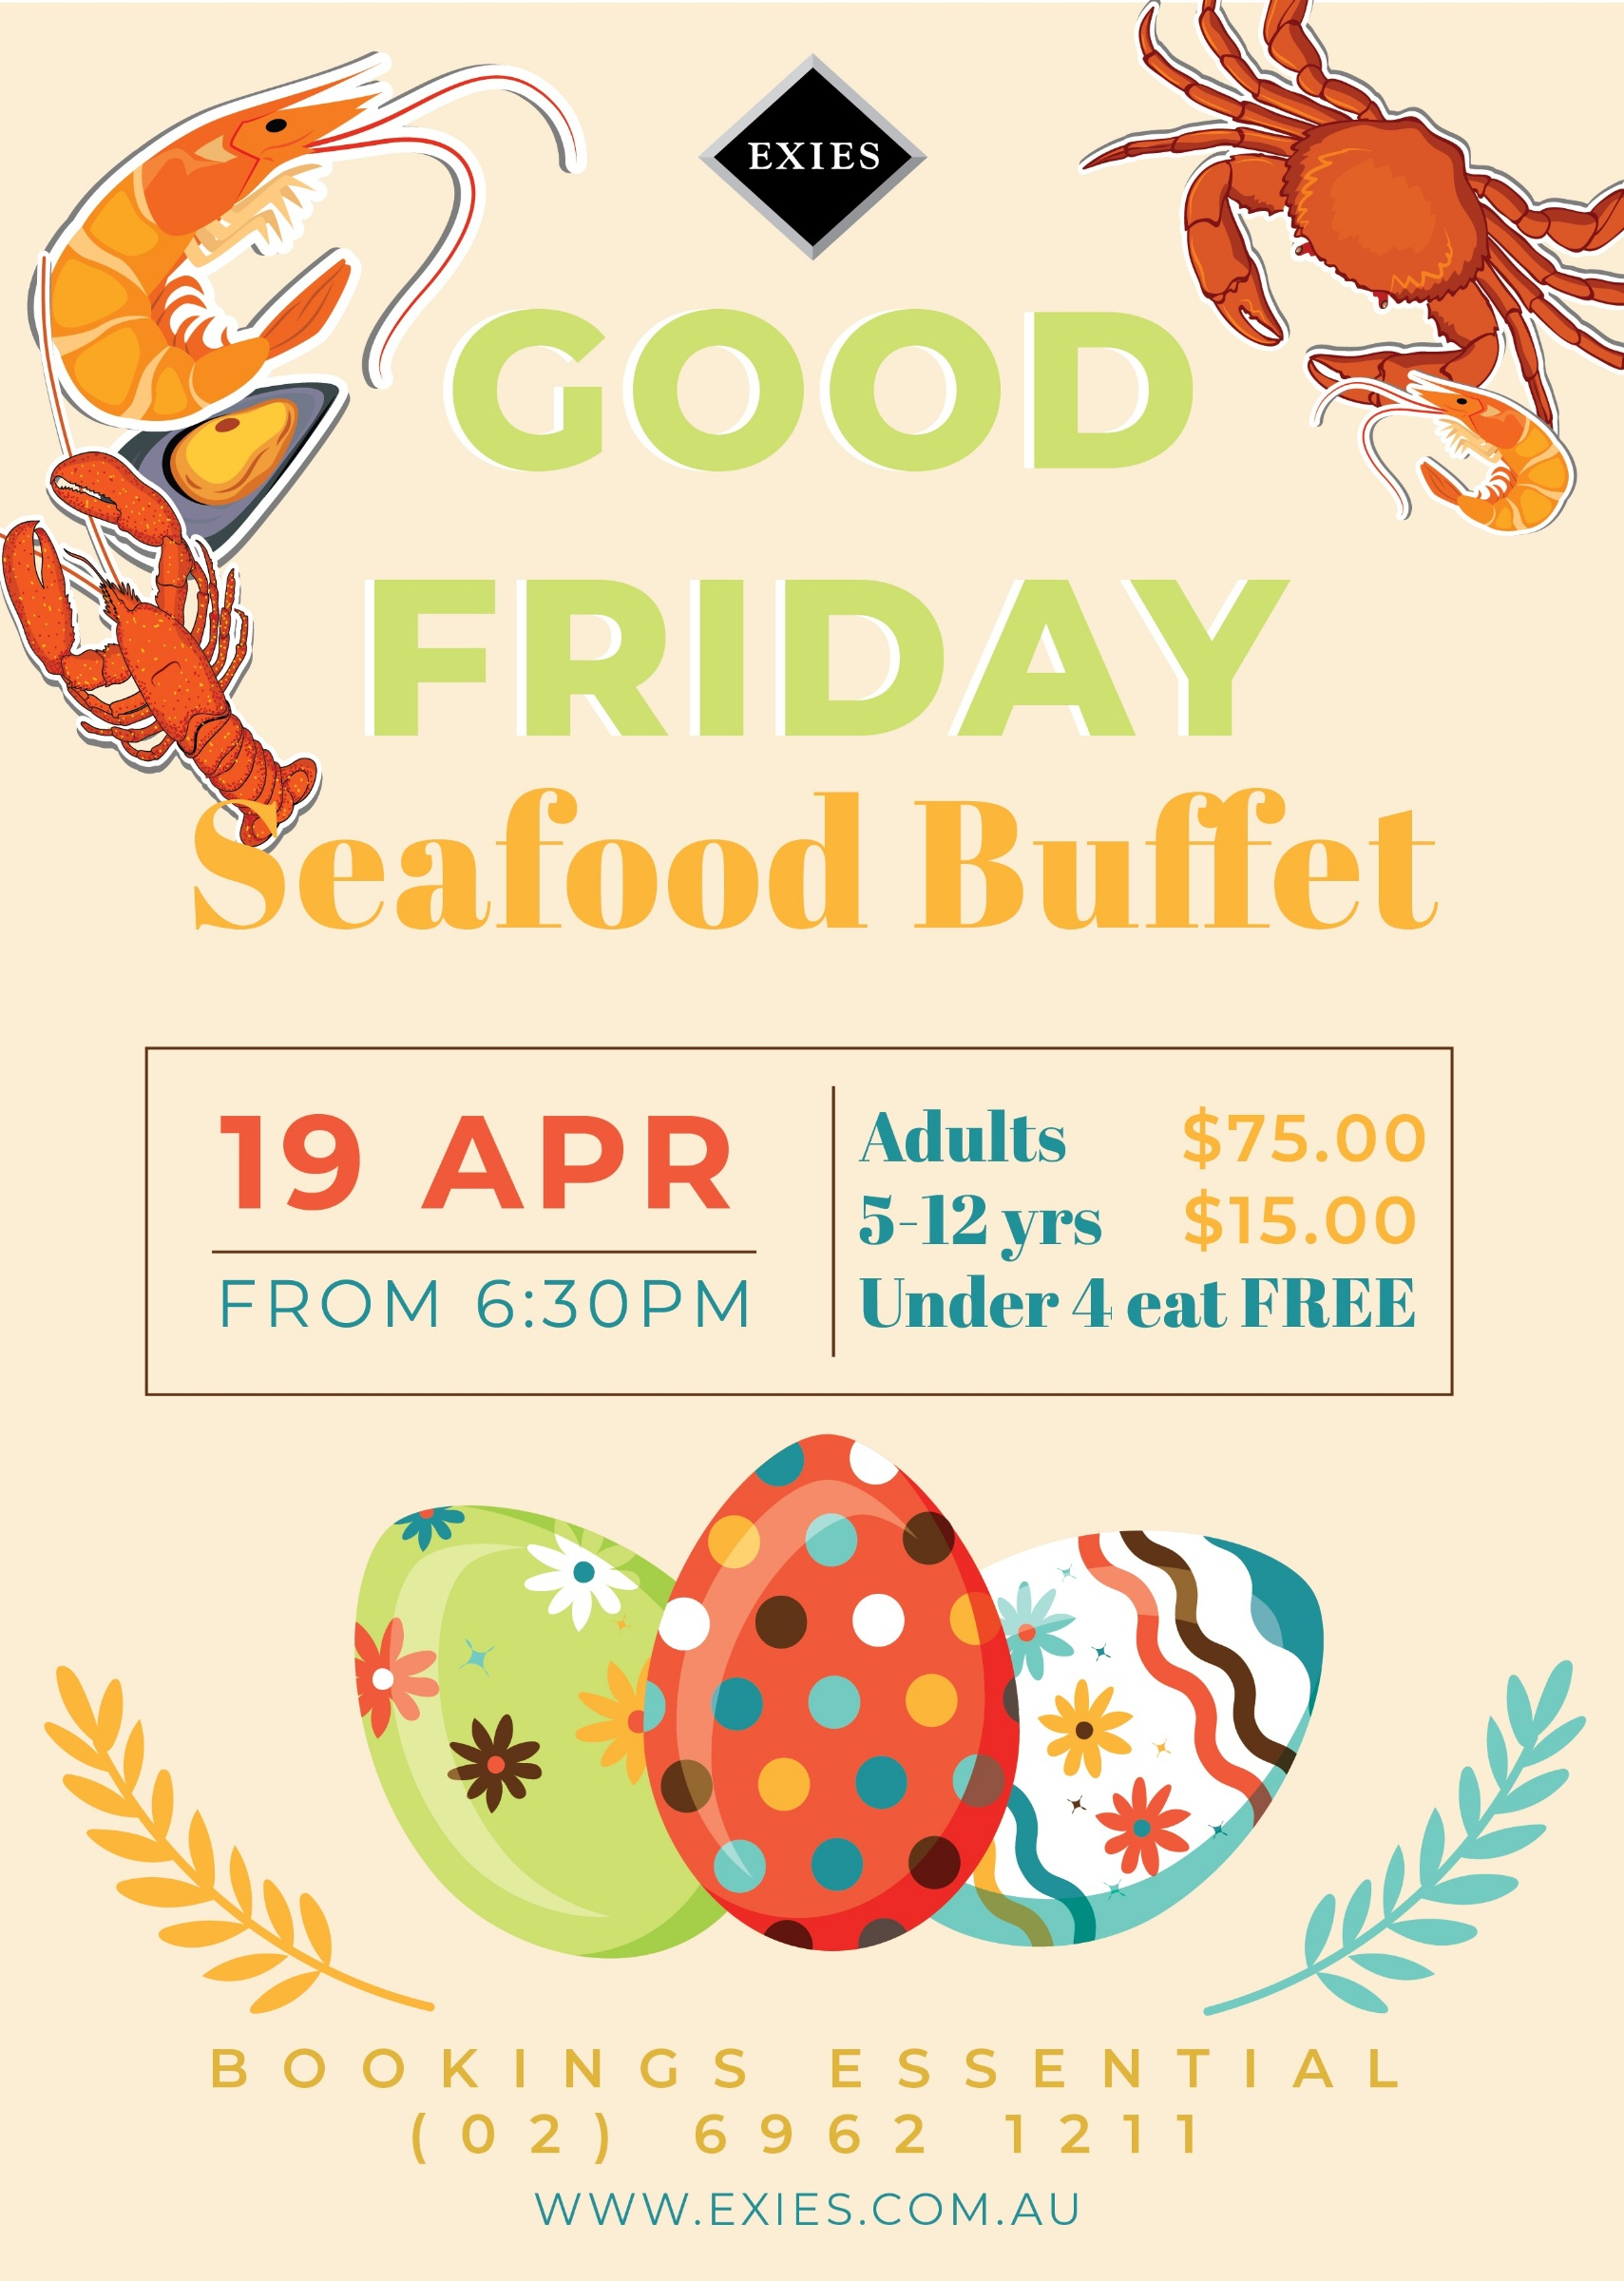 Good Friday Seafood Buffet